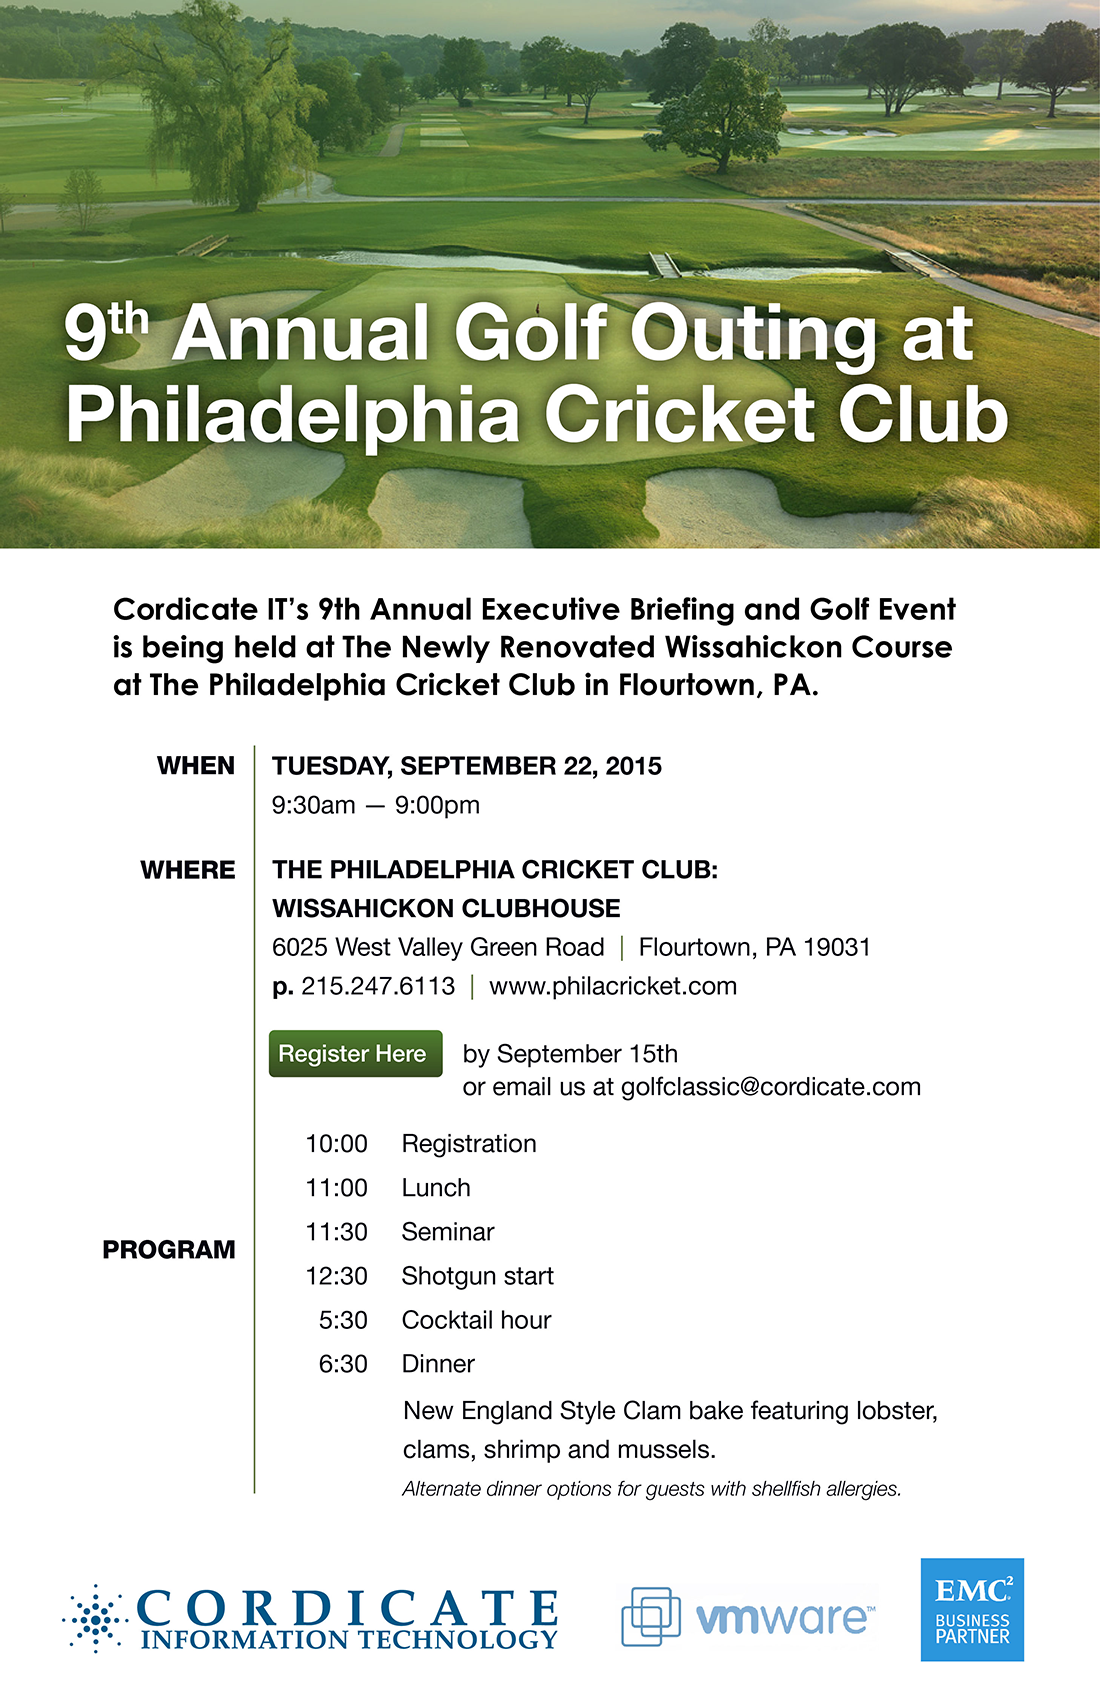 Cordicate IT Golf Outing 2015 Invite